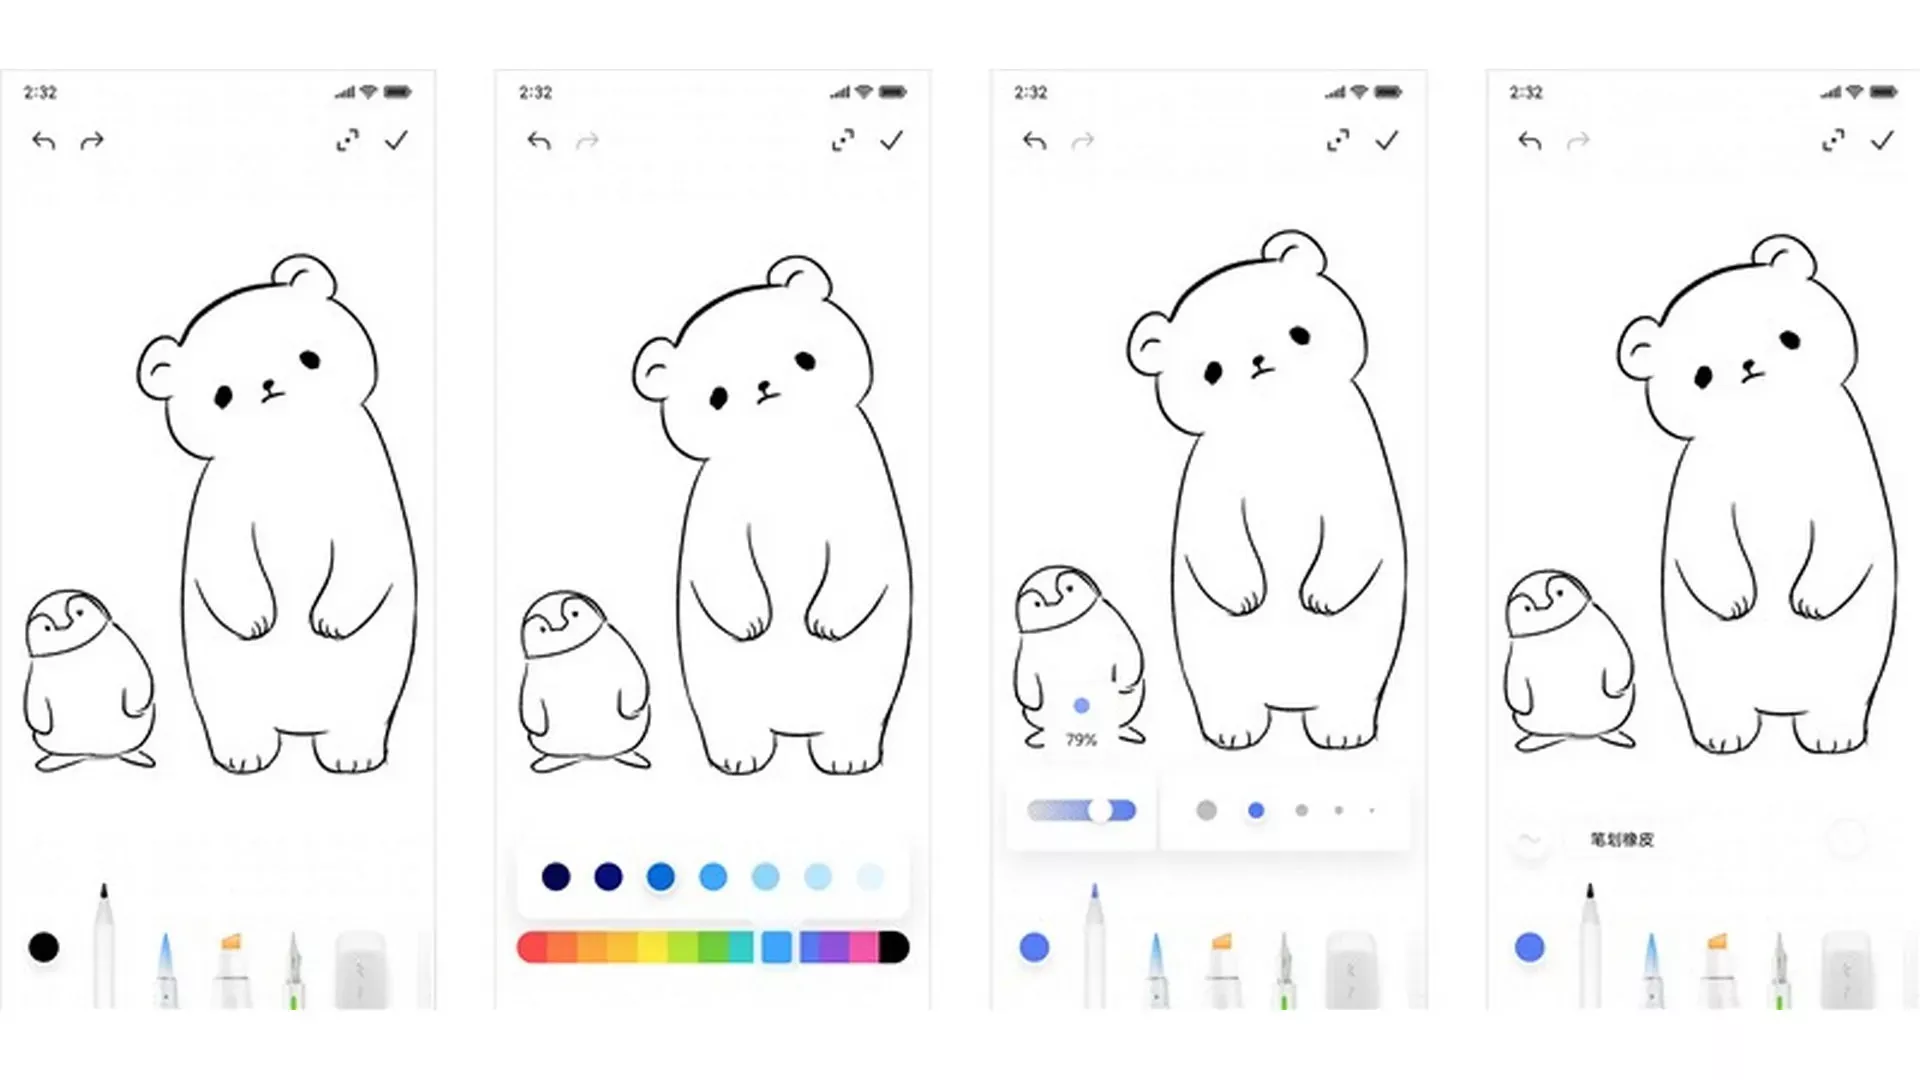 Xiaomi adds new options to its Notes app revealing the arrival of the Mi Pen. News Xiaomi Addicts